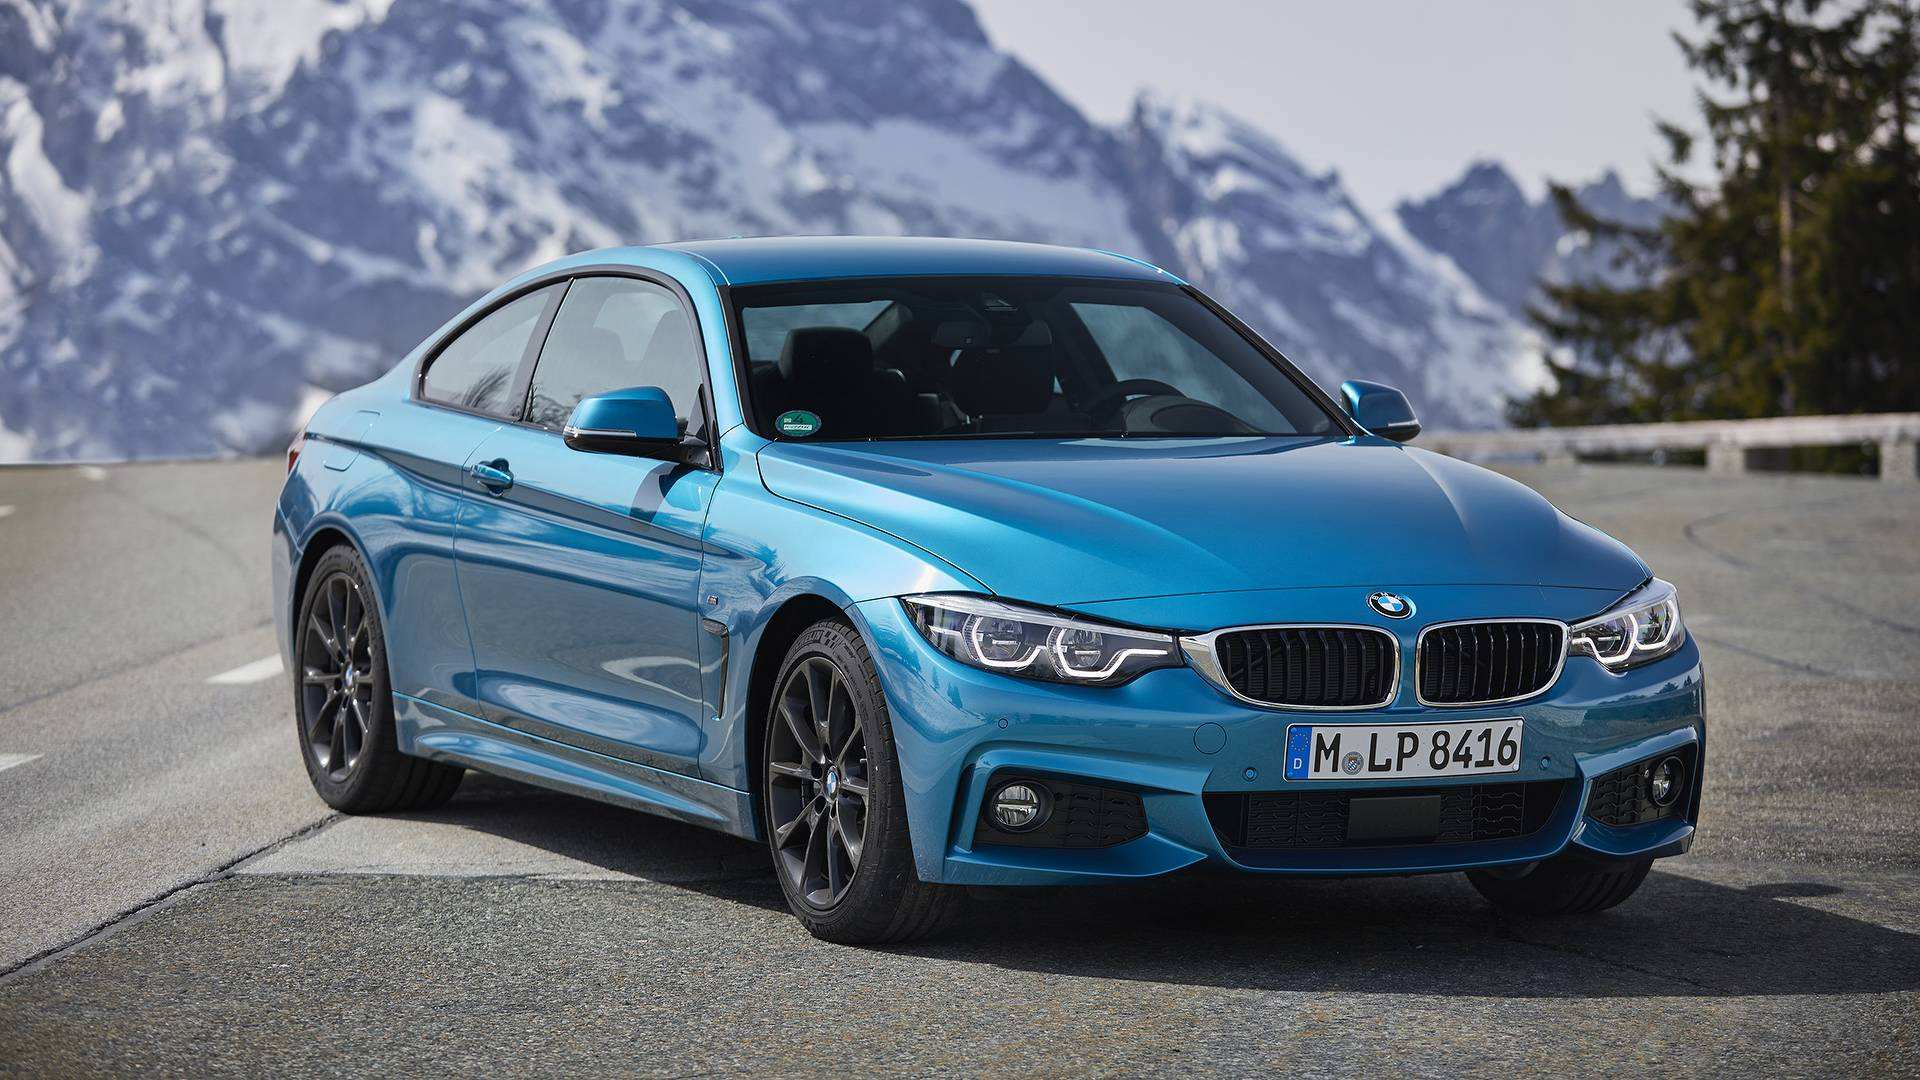 26 New Bmw 4 2019 Prices for Bmw 4 2019